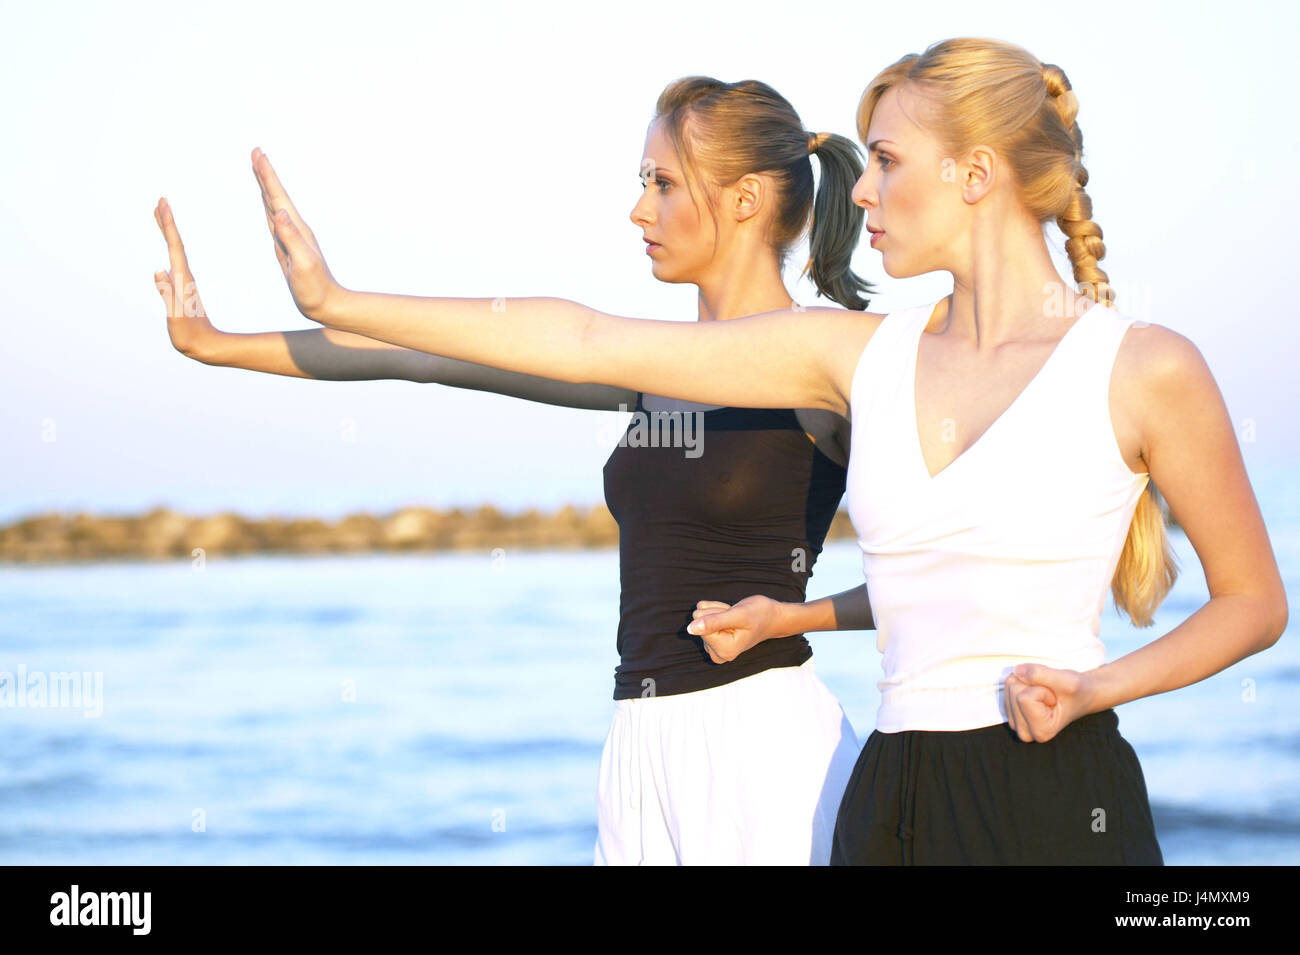 Beach Women Leisurewear Yoga Exercises At The Side 20 30 Years Friends Friendship Tai Chi Shadow Speakers Meditation Meditate